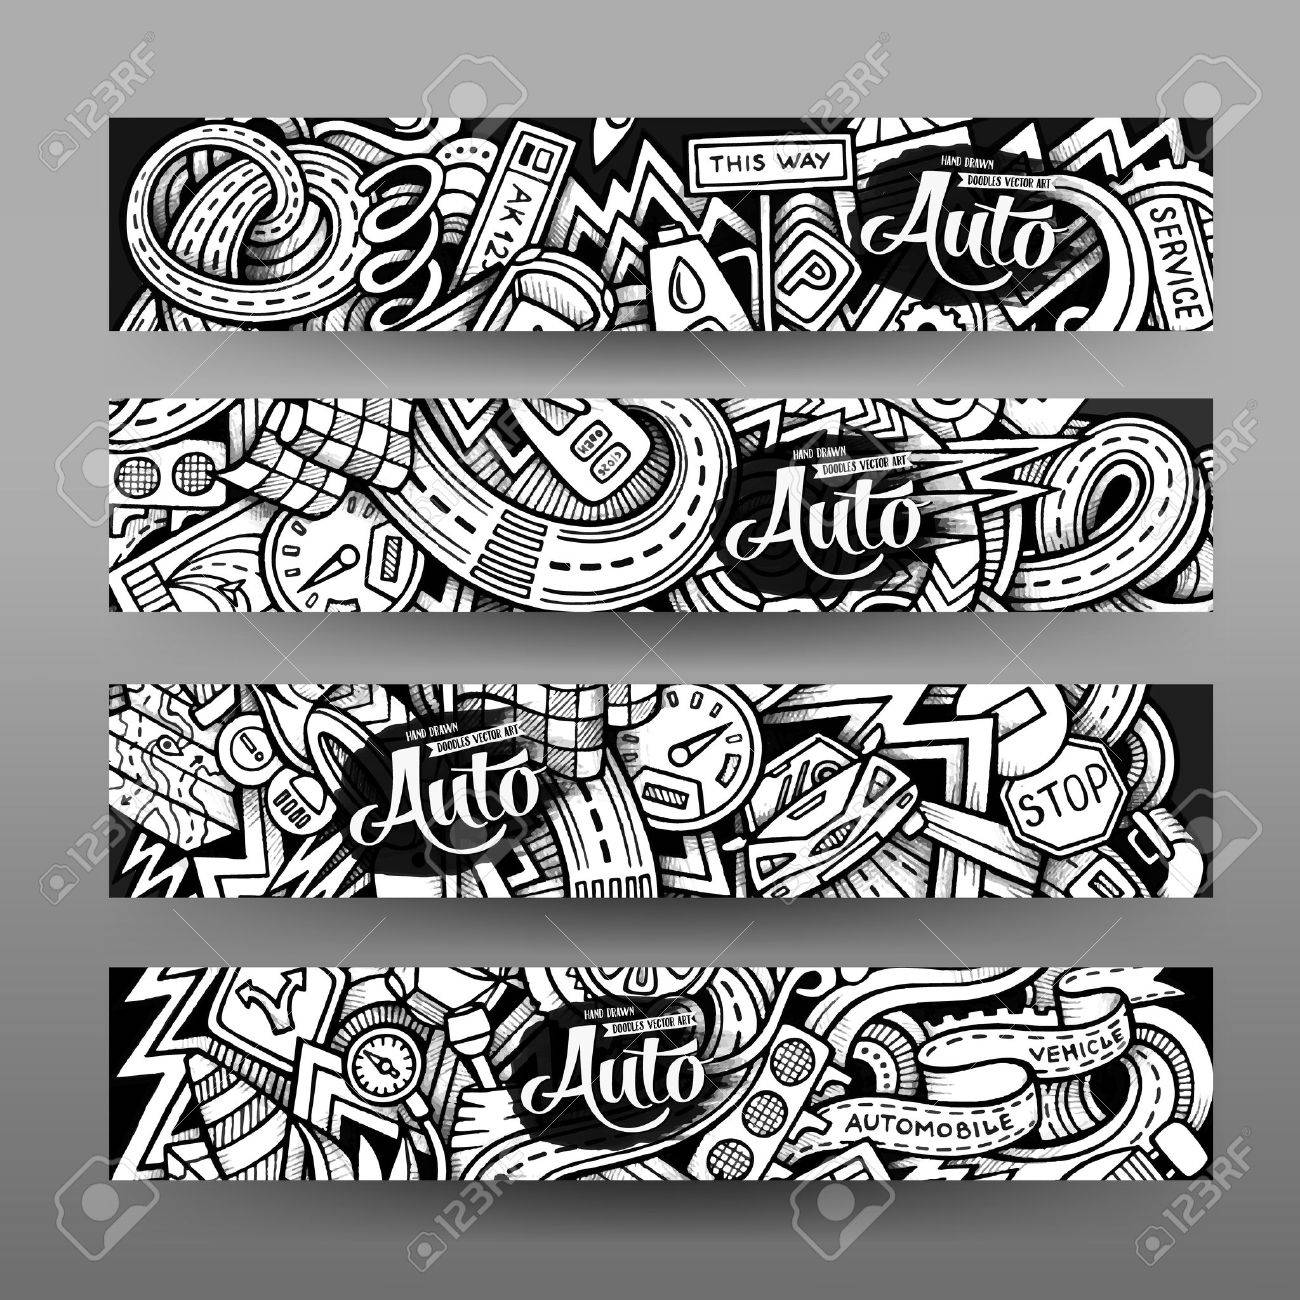 Graphics vector hand drawn sketchy trace automotive doodle graphics vector hand drawn sketchy trace automotive doodle horizontal banner design templates set stock vector pronofoot35fo Choice Image